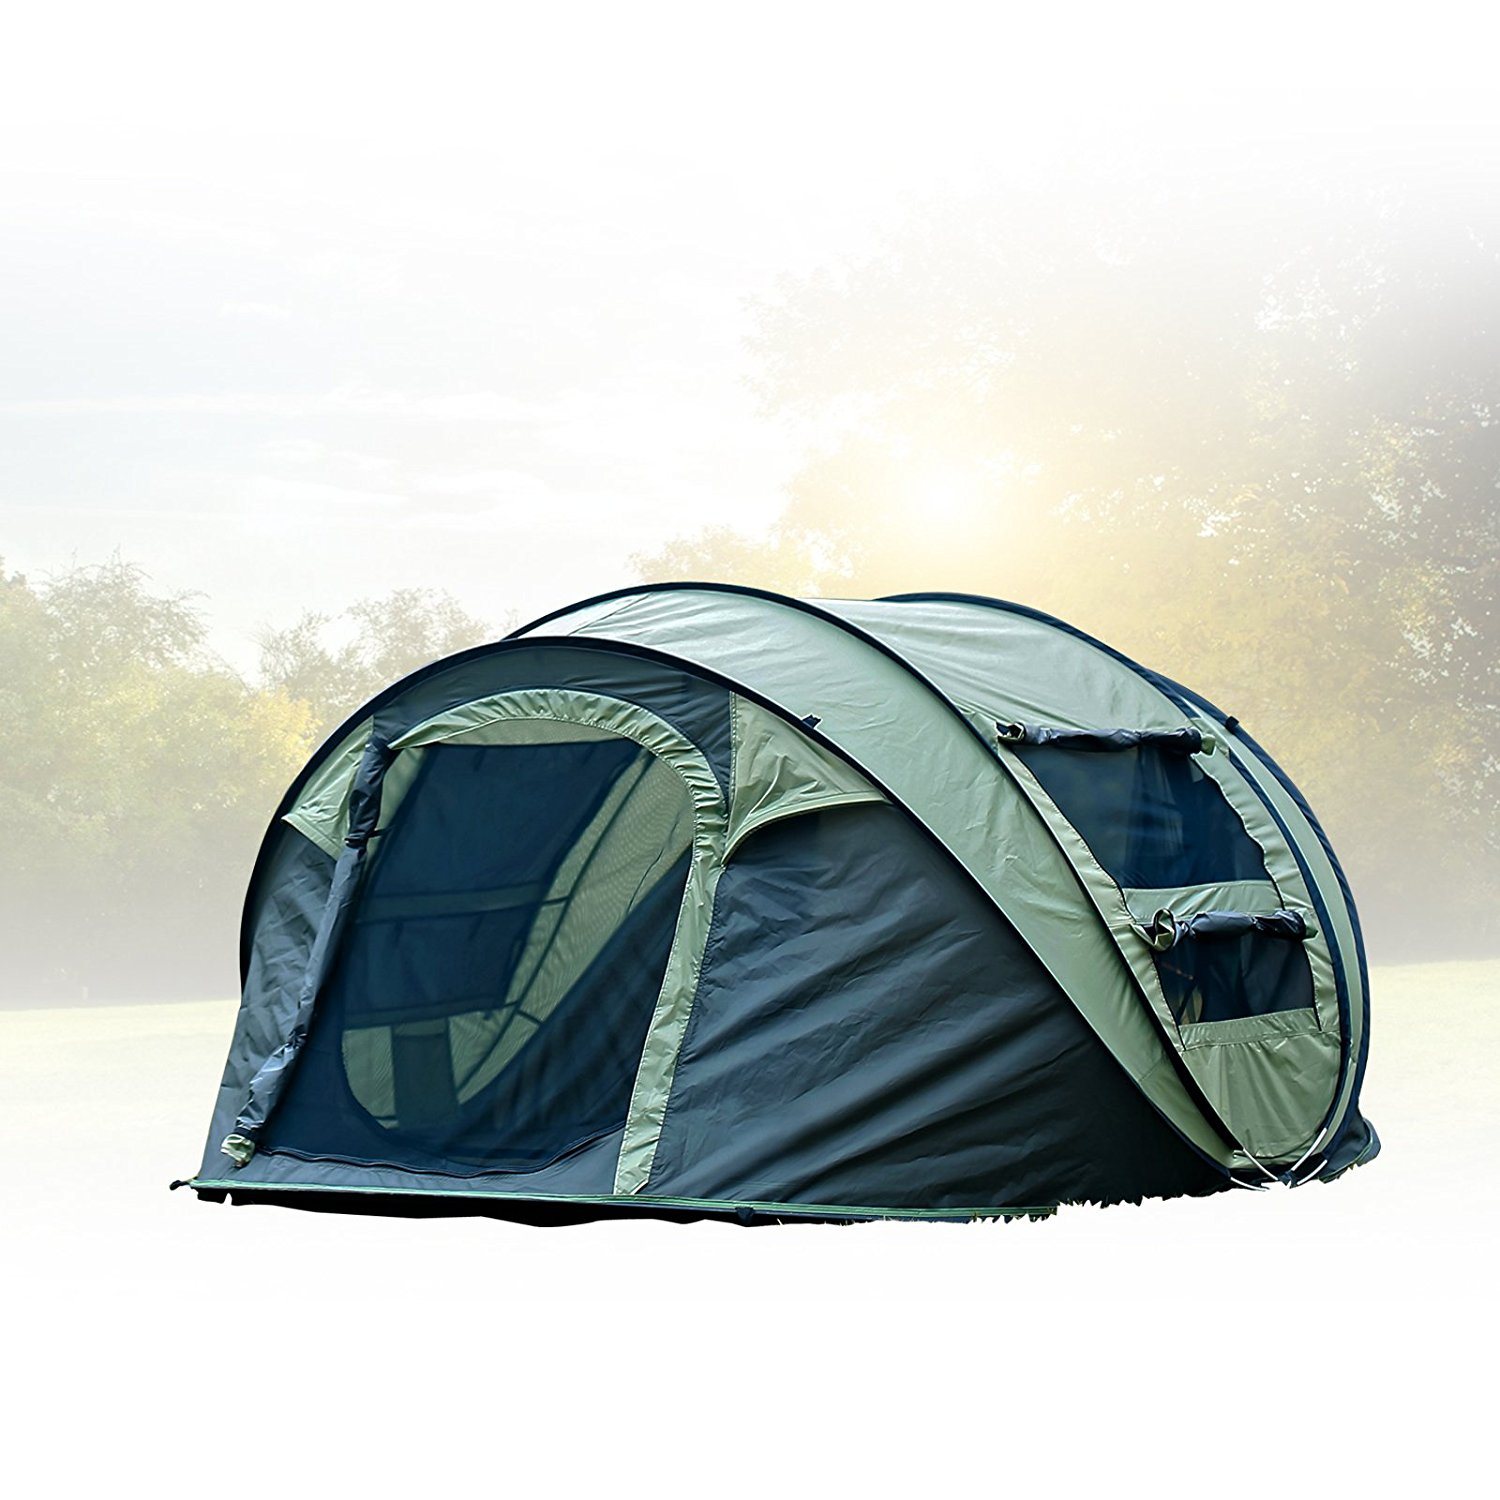 Choice for the Best 4 Person Tent  sc 1 st  Outdoor Cafe Mag & Choice for the Best 4 Person Tent - Outdoor Cafe Mag